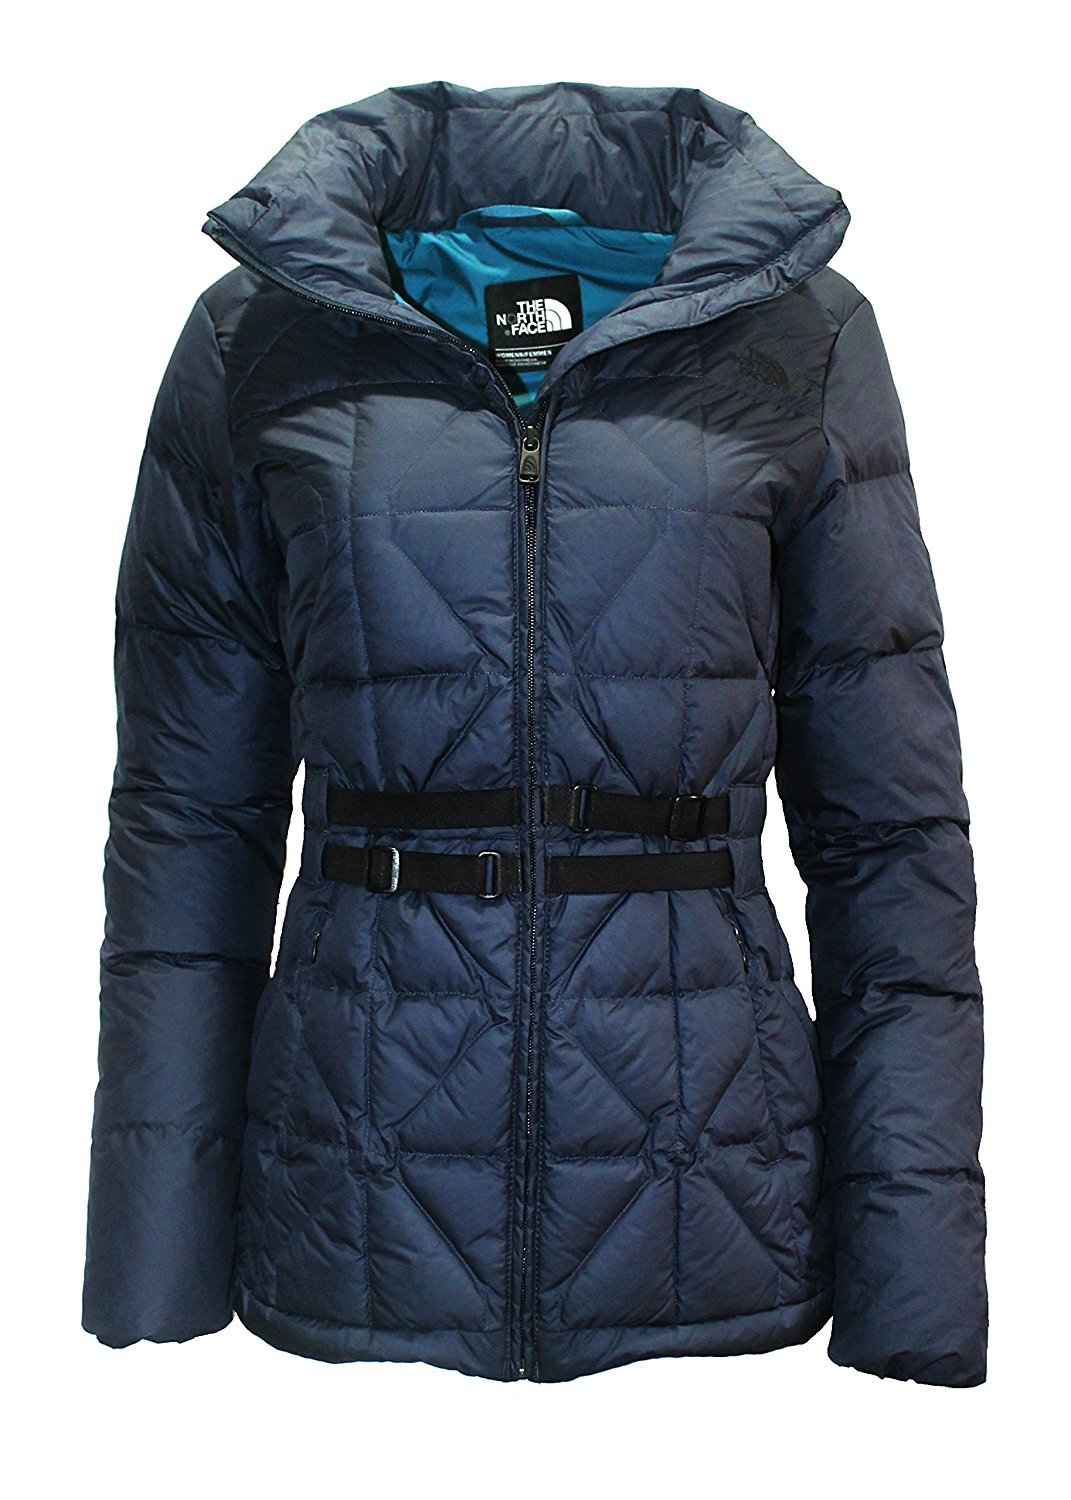 THE NORTH FACE WOMEN'S BELTED MERA PEAK DOWN PARKA JACKET XLARGE [並行輸入品] B075CJWPDN